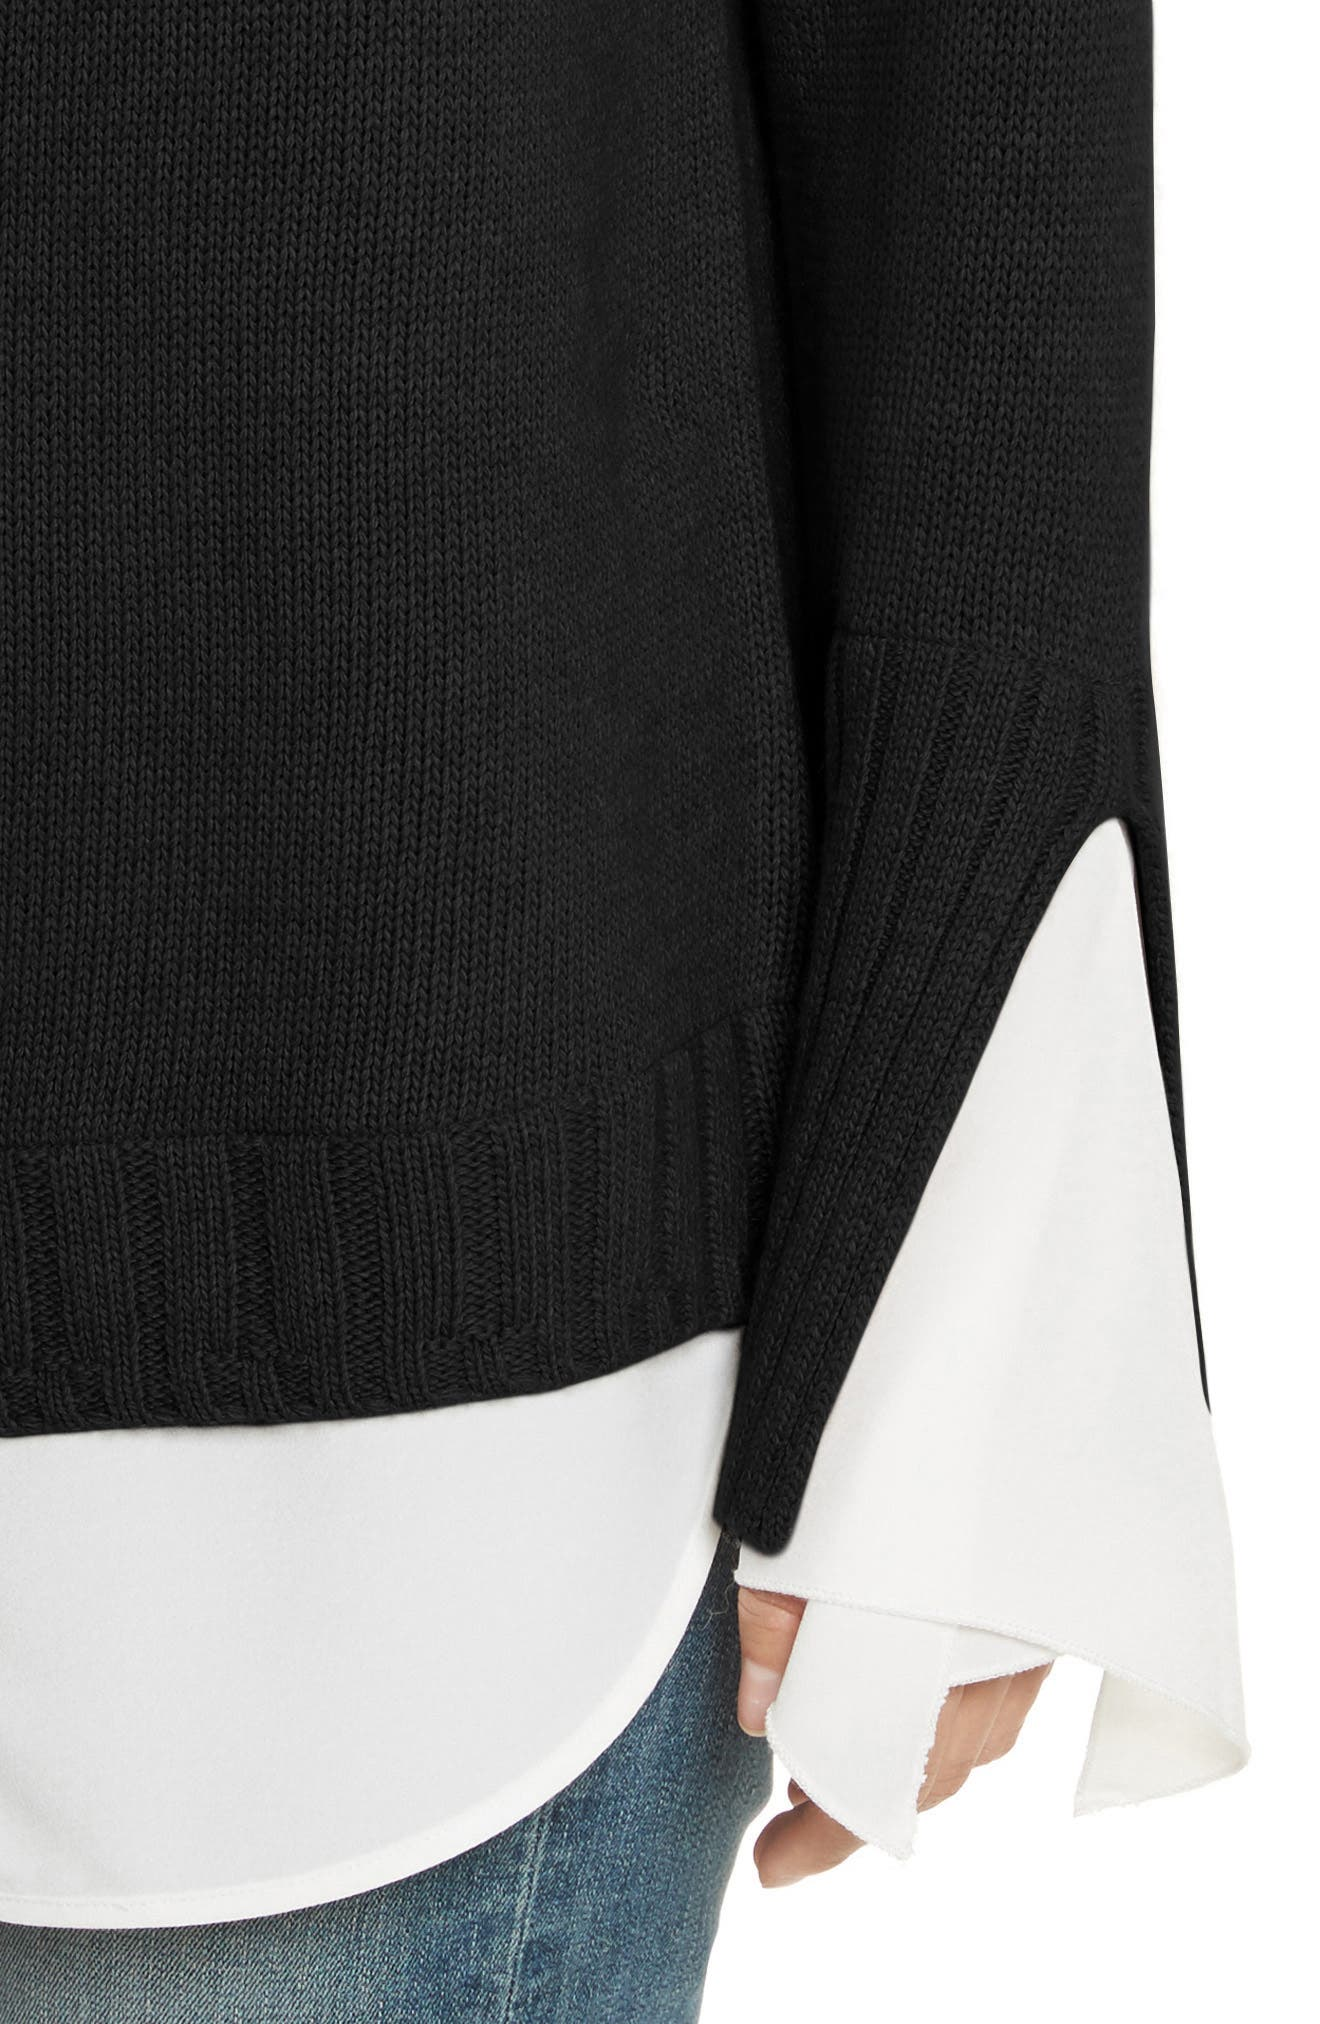 Remi Layered Pullover,                             Alternate thumbnail 4, color,                             002